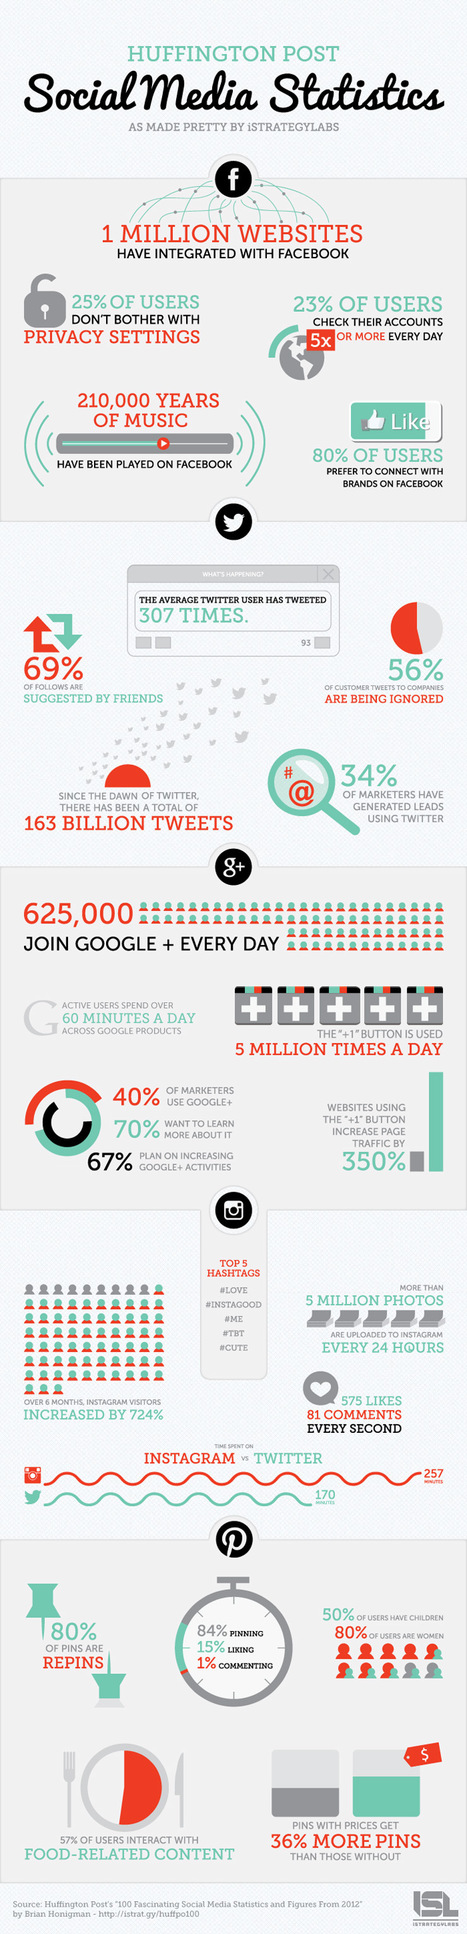 Social Media Statistics: Huffington Post Infographic | Social Media Advocacy | Scoop.it